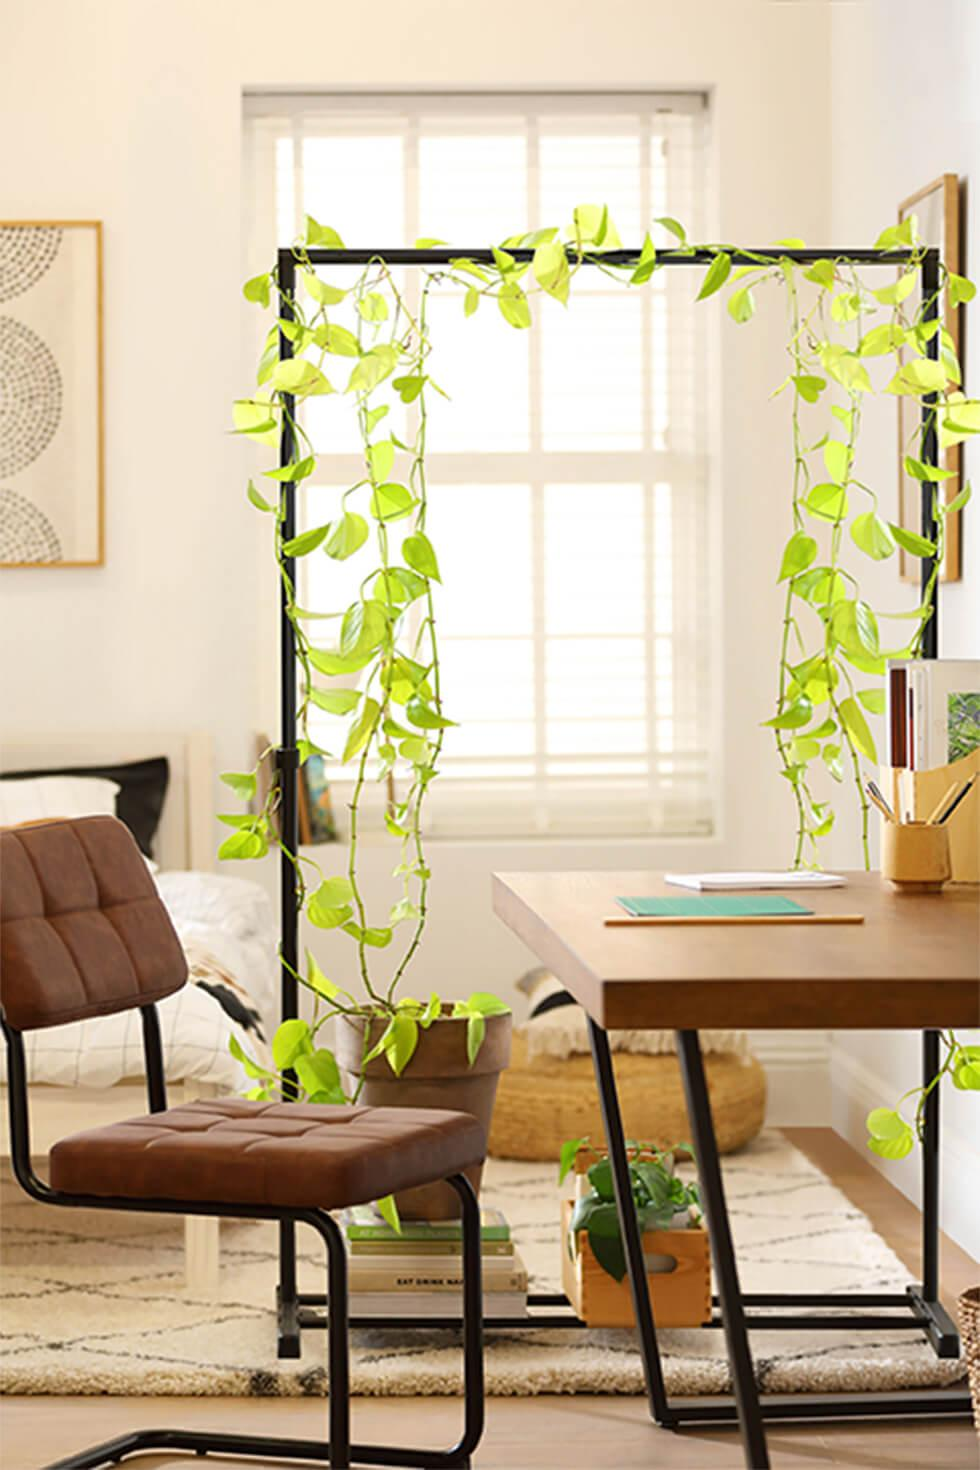 Hang the trailing plants first